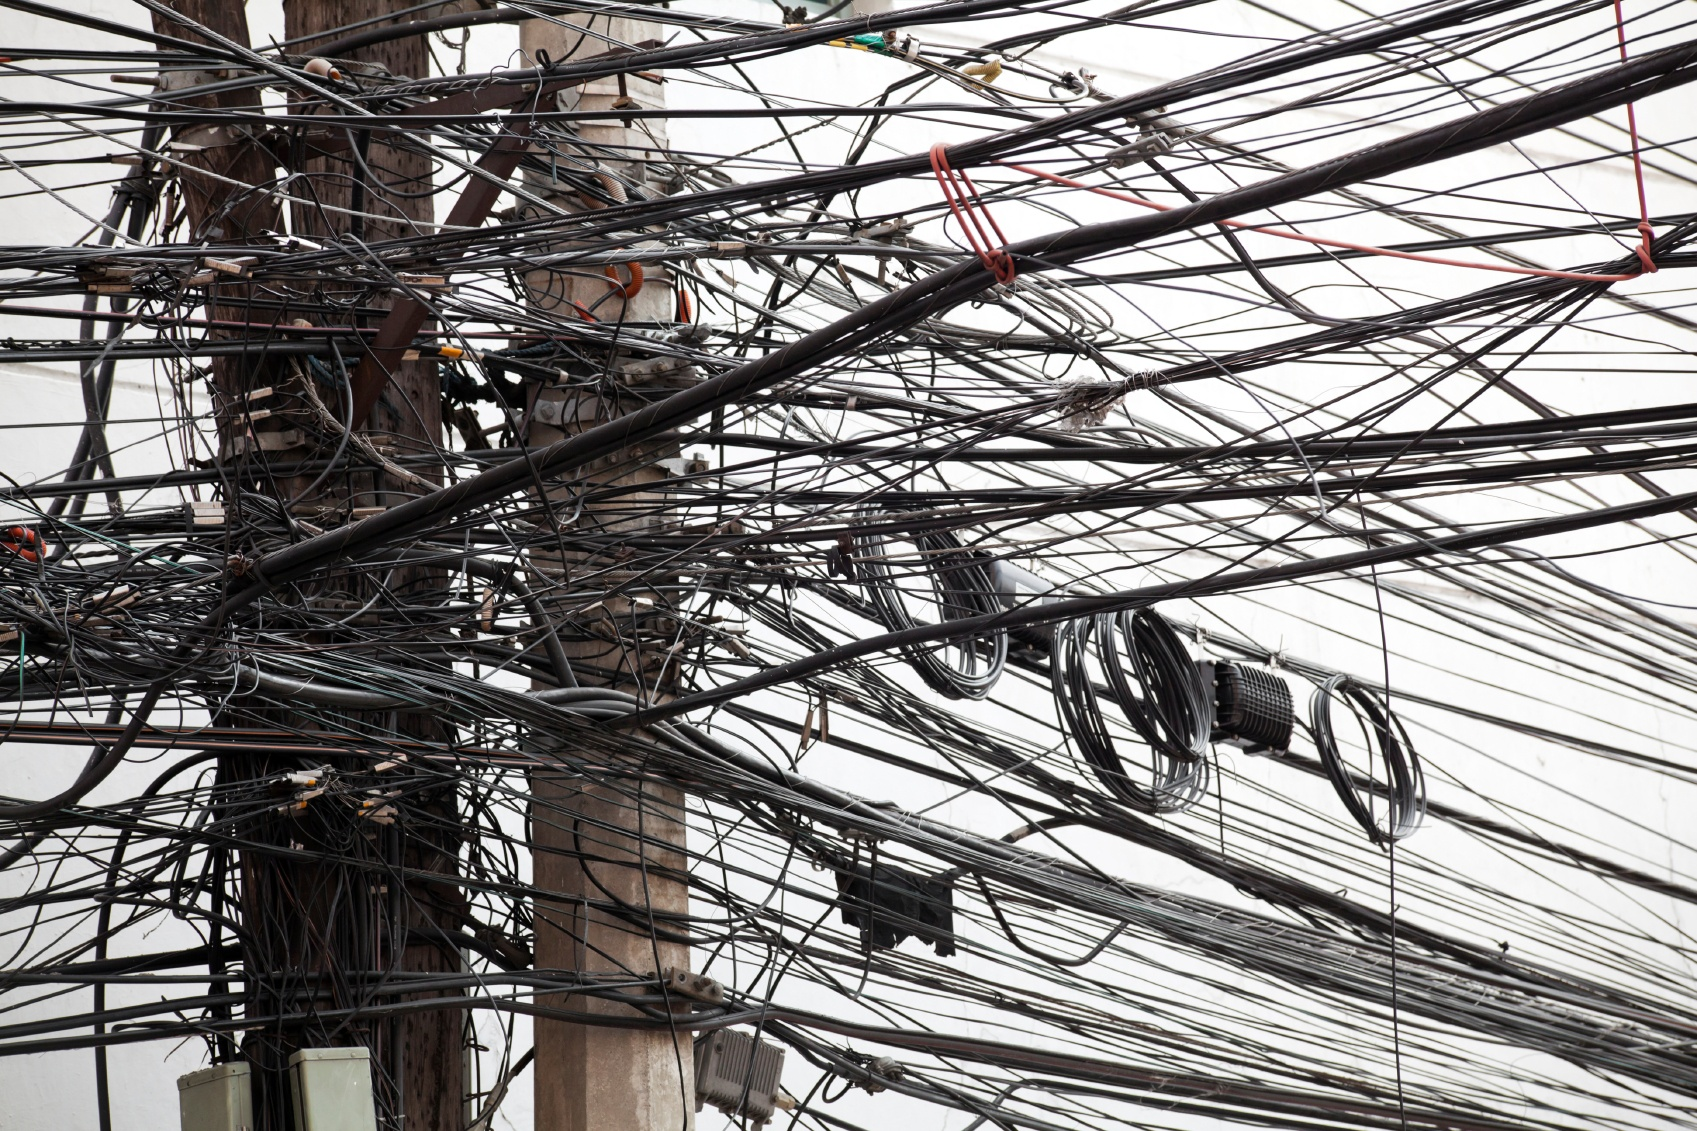 wires-confused-on-telephone-pole